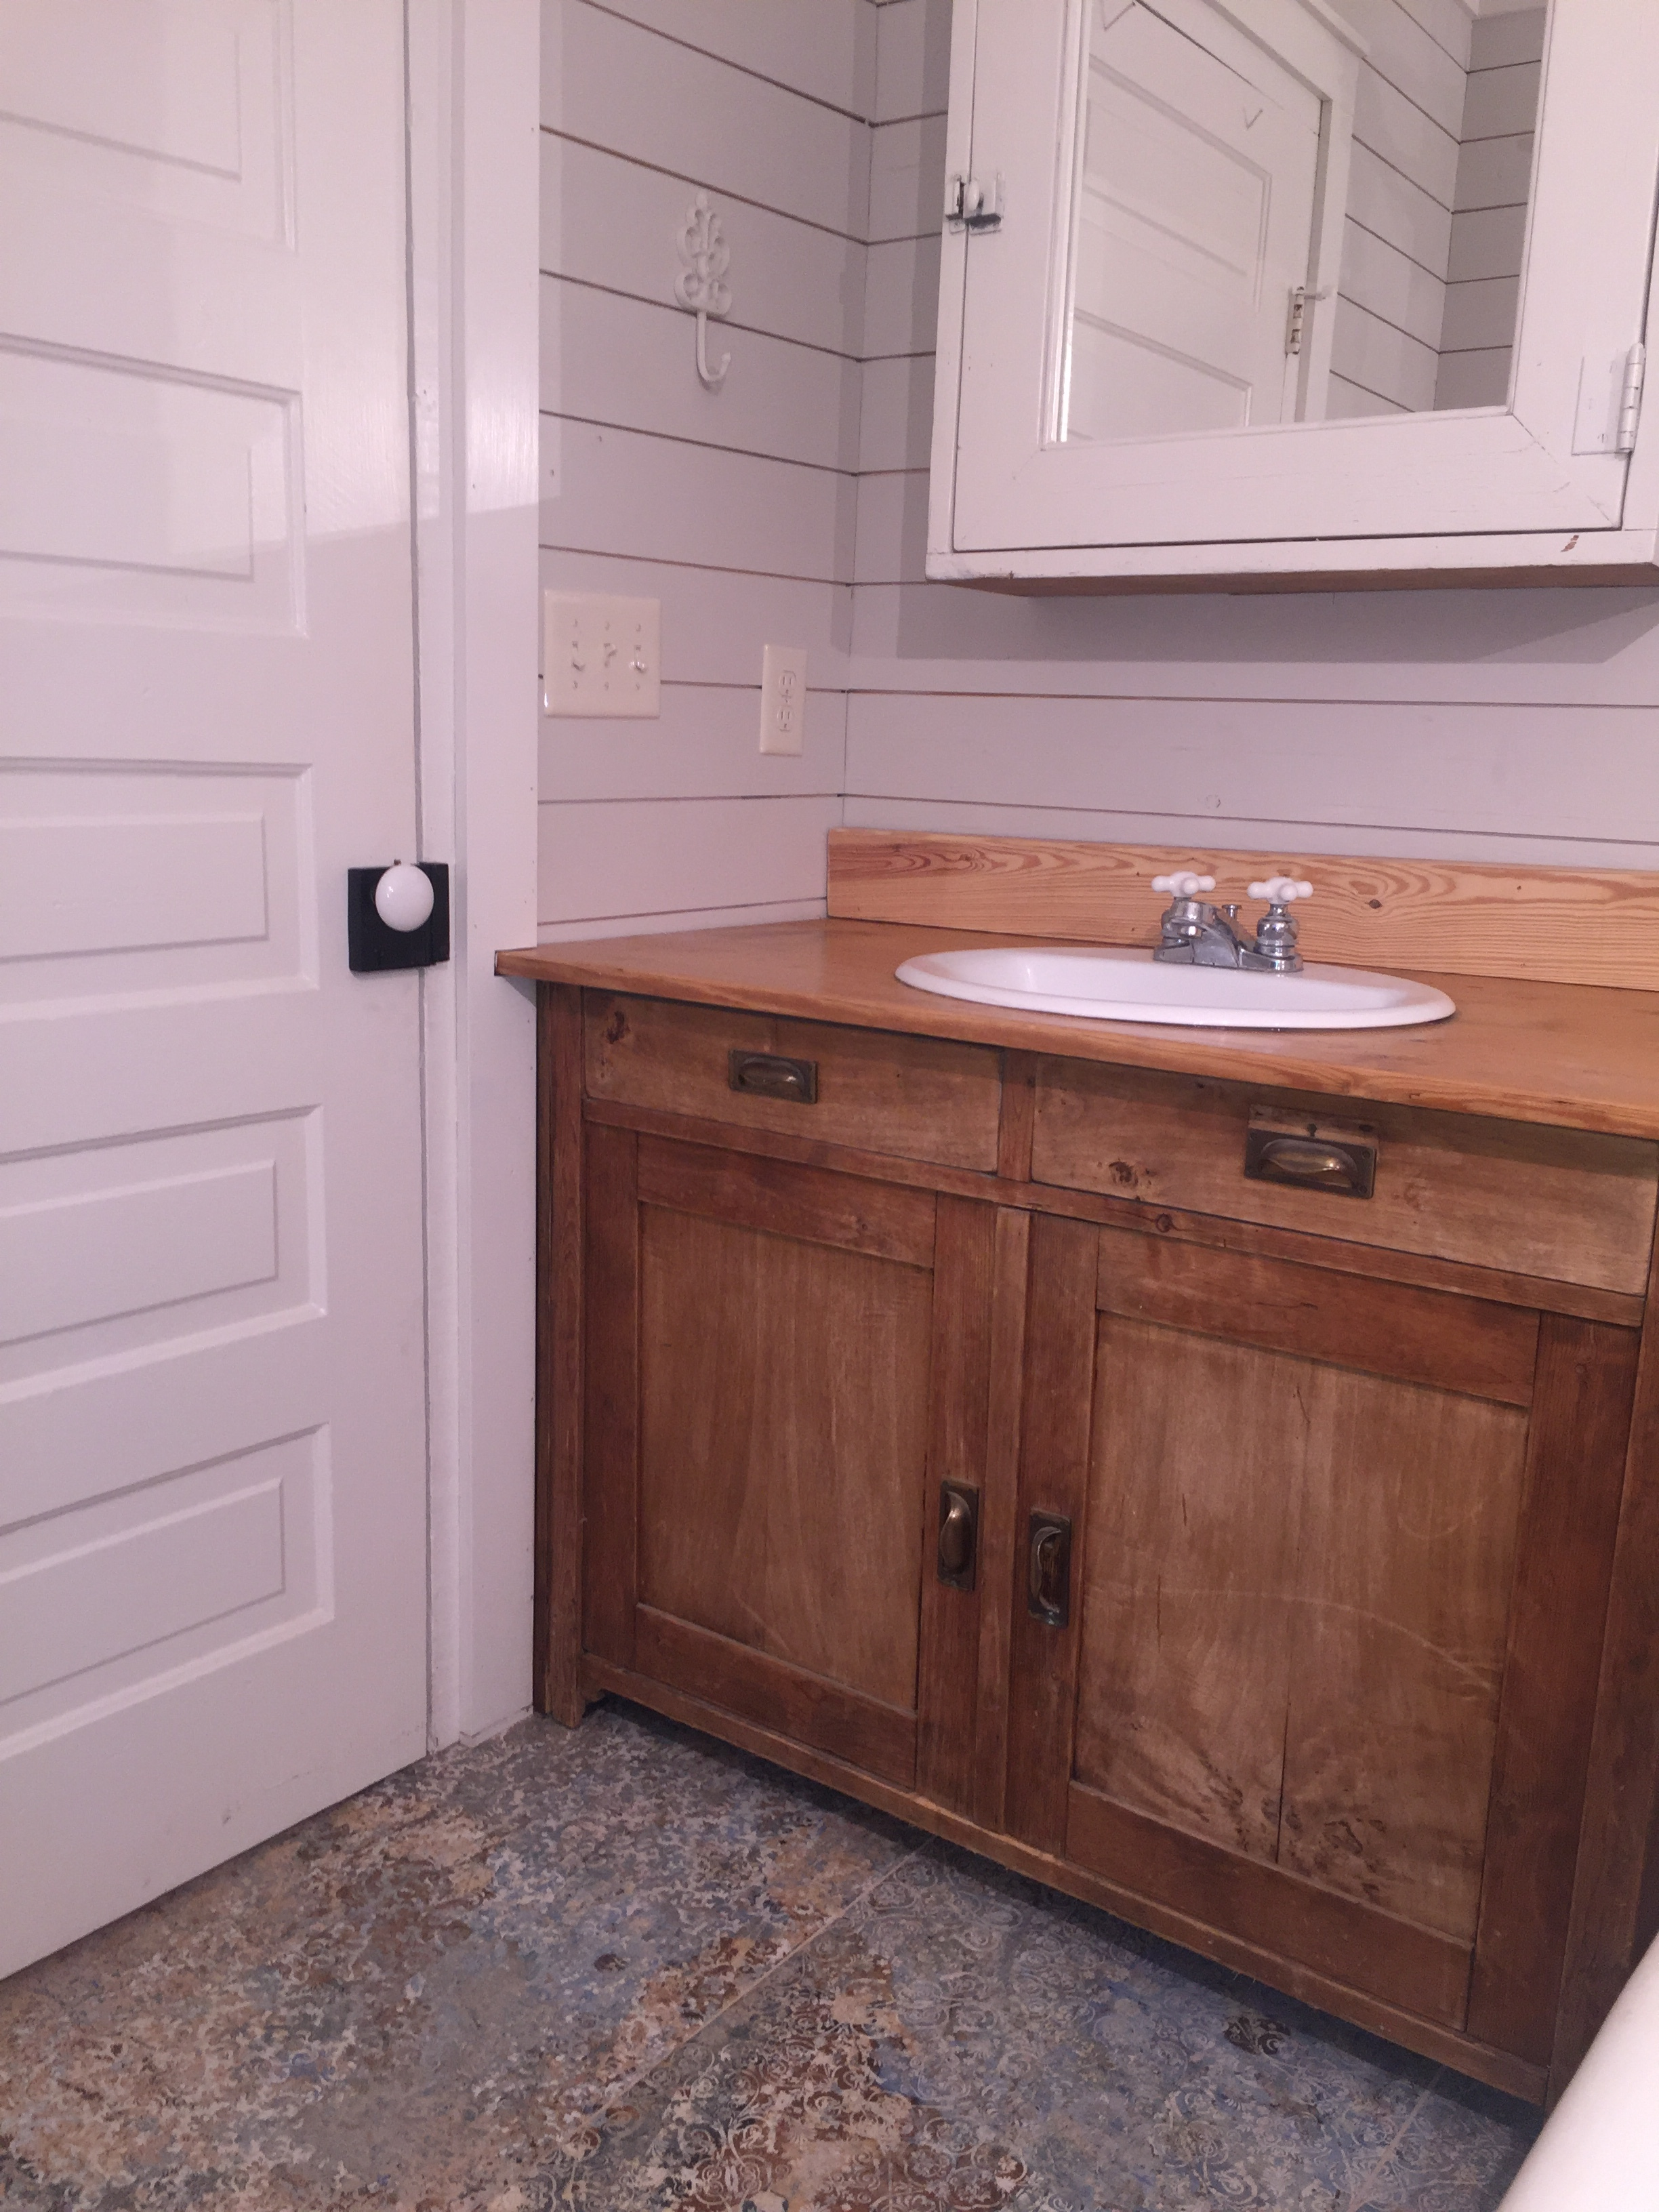 Shealy Middle Bath Vanity AFTER.JPG